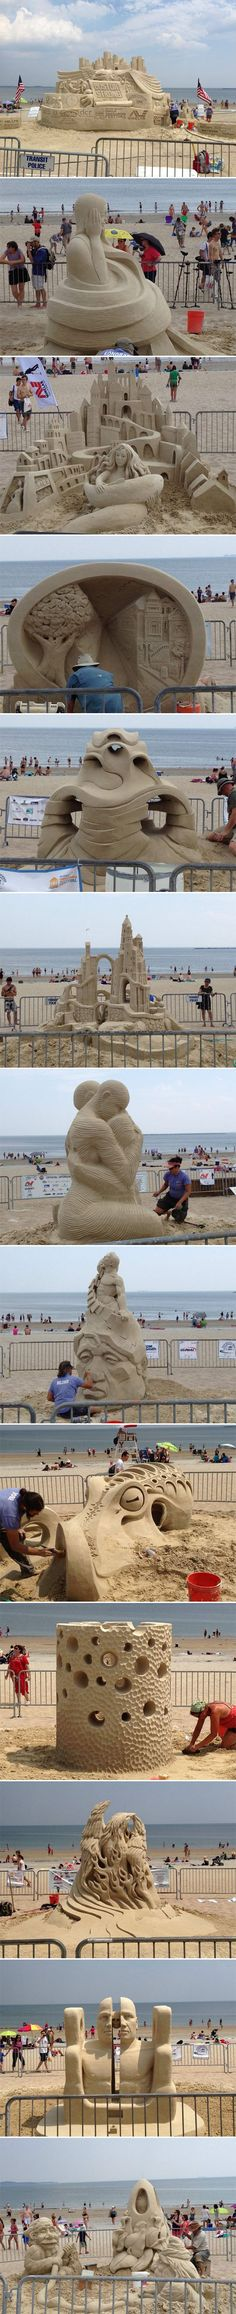 cool-beach-sand-sculptures-Revere